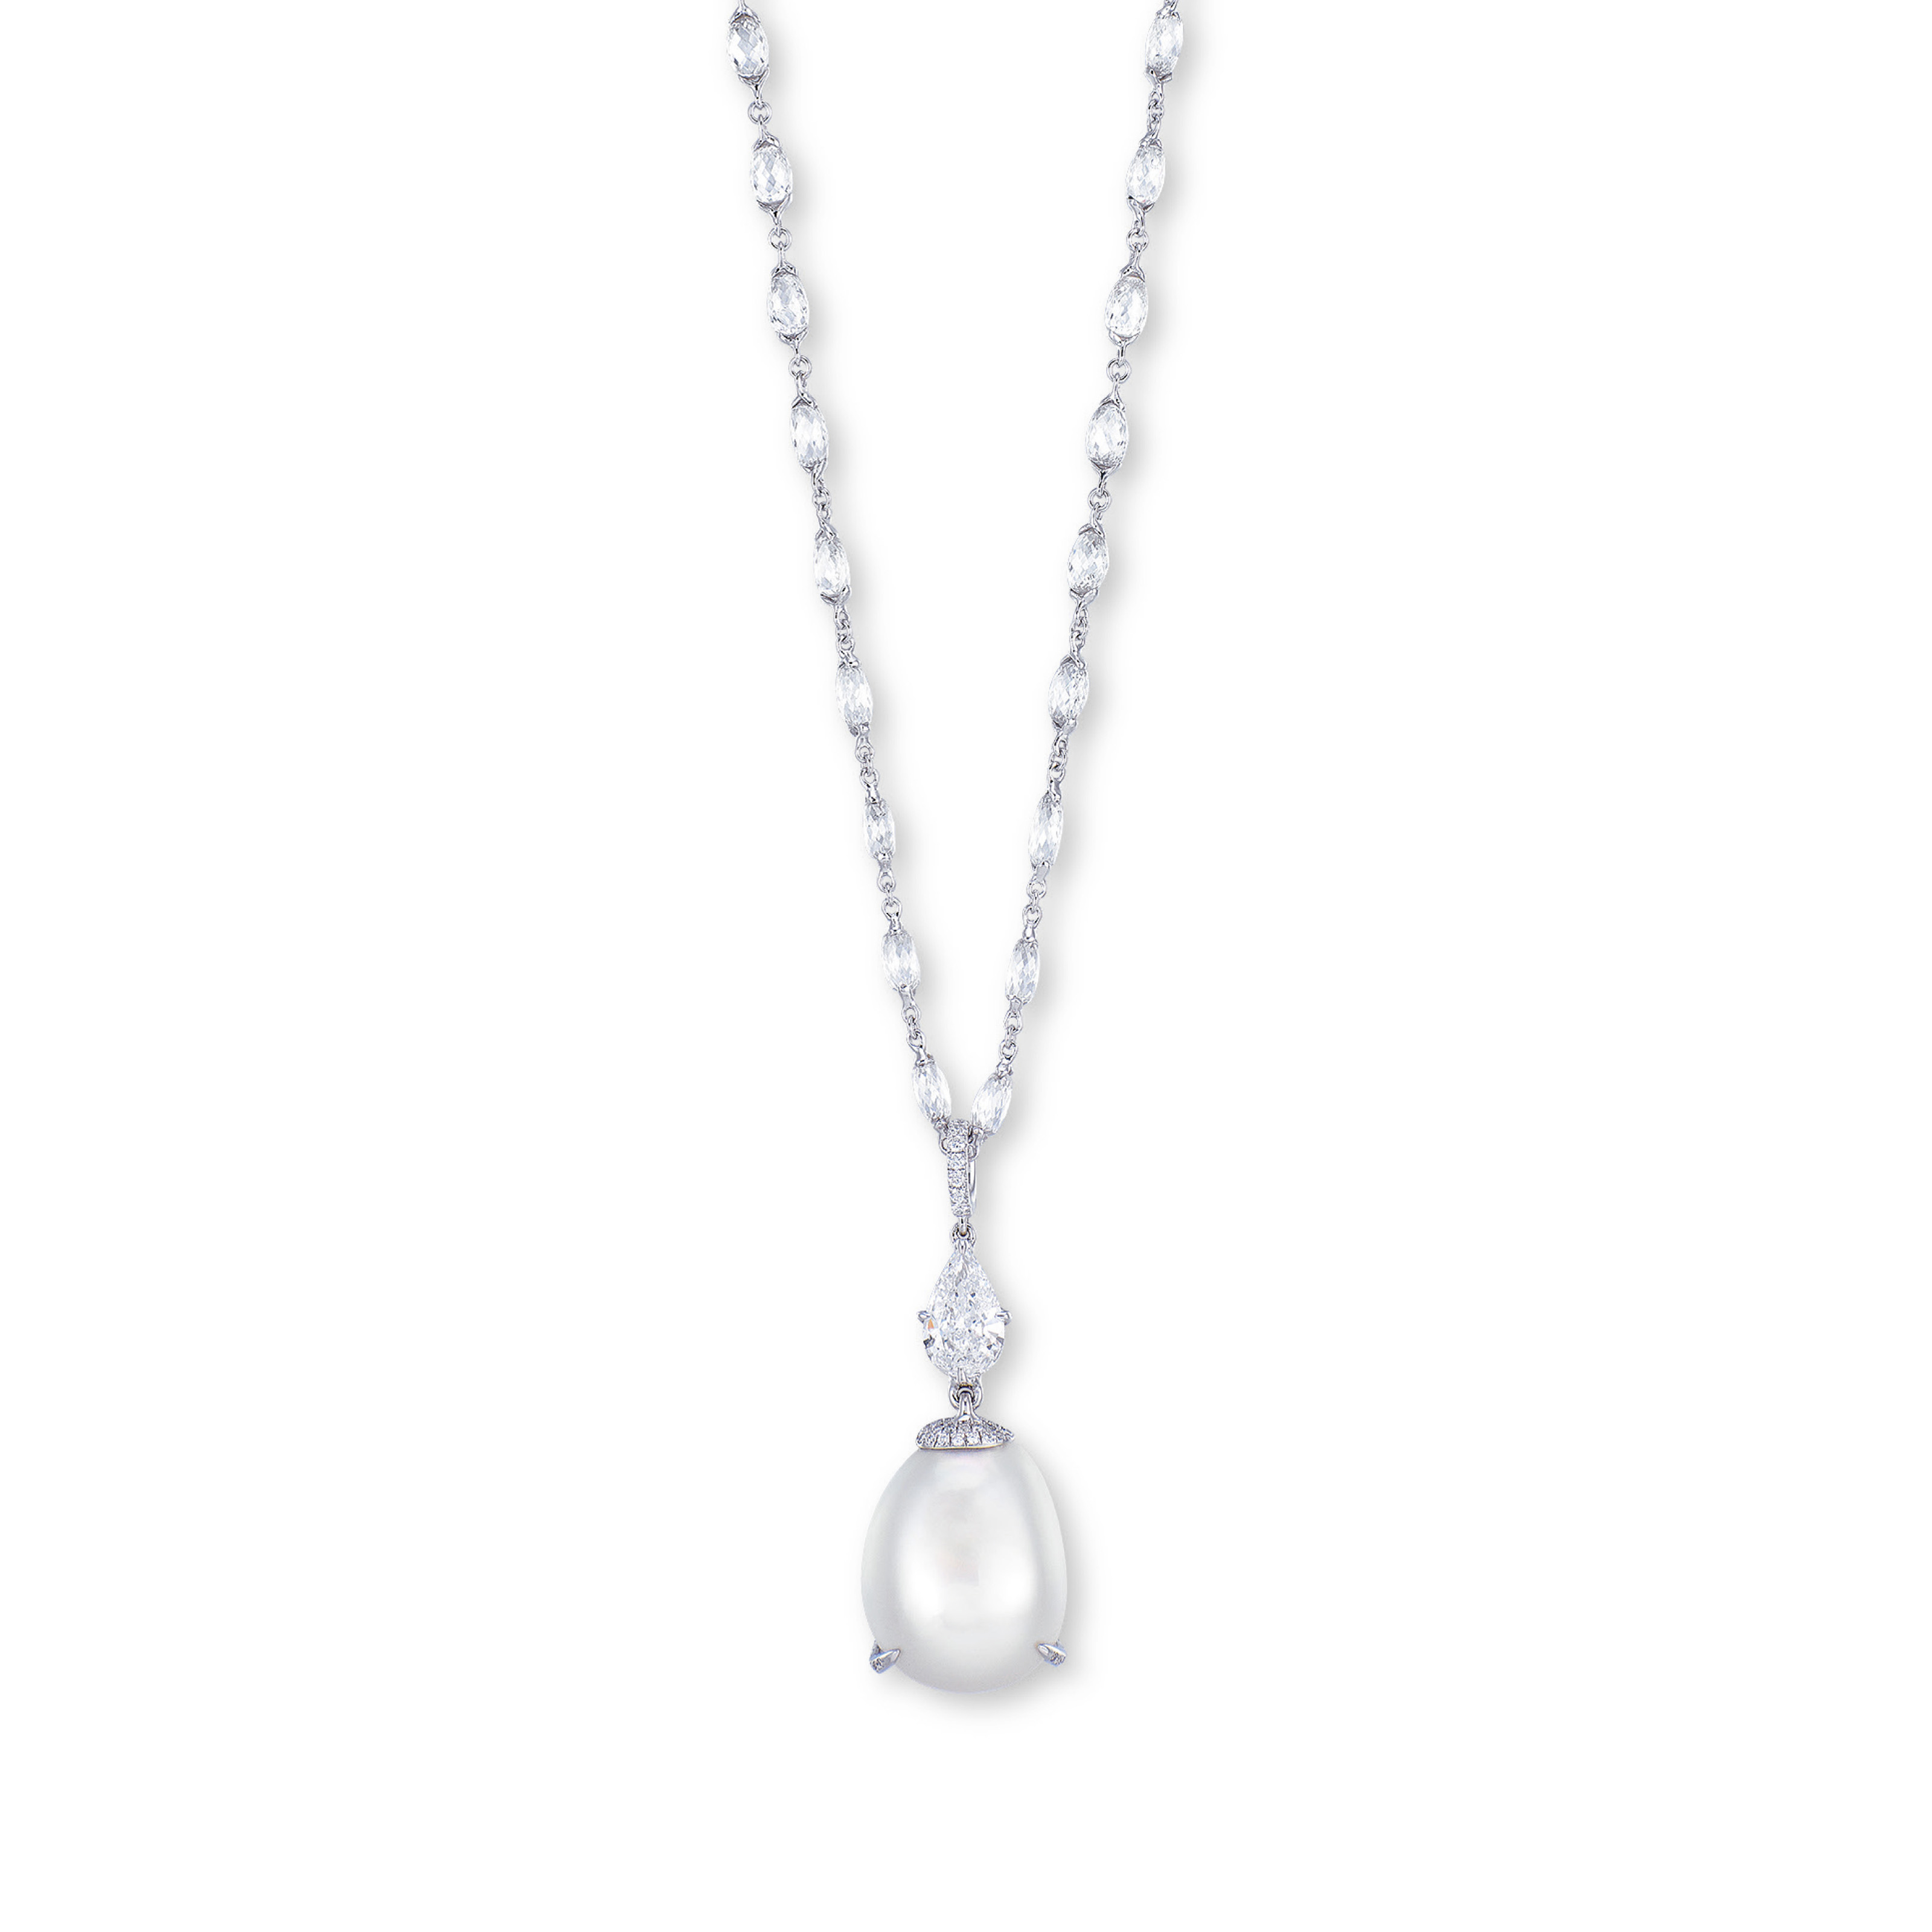 A NATURAL PEARL AND DIAMOND PENDENT NECKLACE, BY ETCETERA FOR PASPALEY